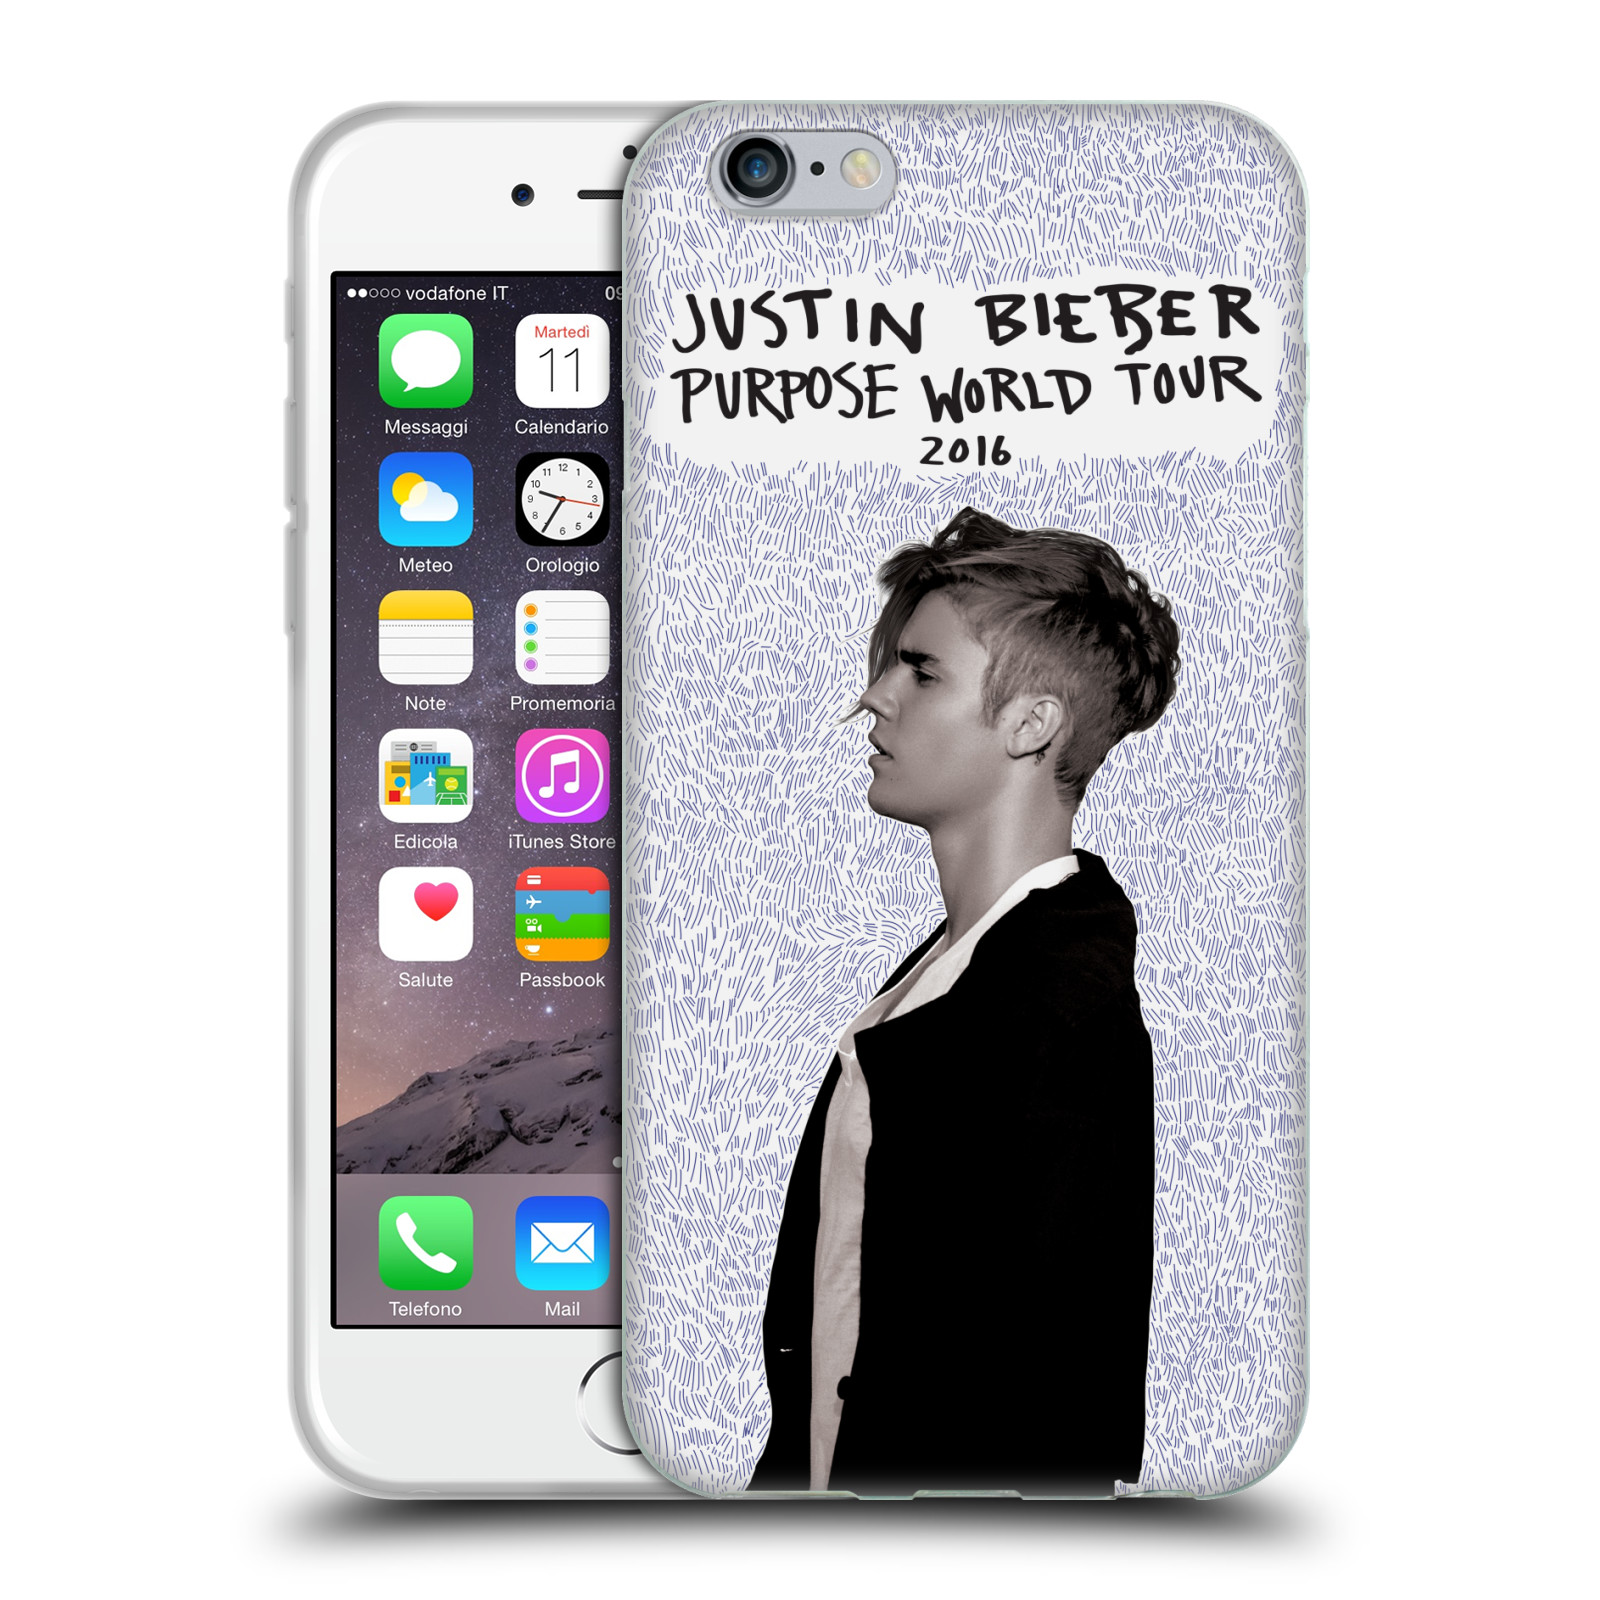 HEAD CASE silikonový obal na mobil Apple Iphone 6 / 6S originální potisk Justin Bieber Purpose world tour